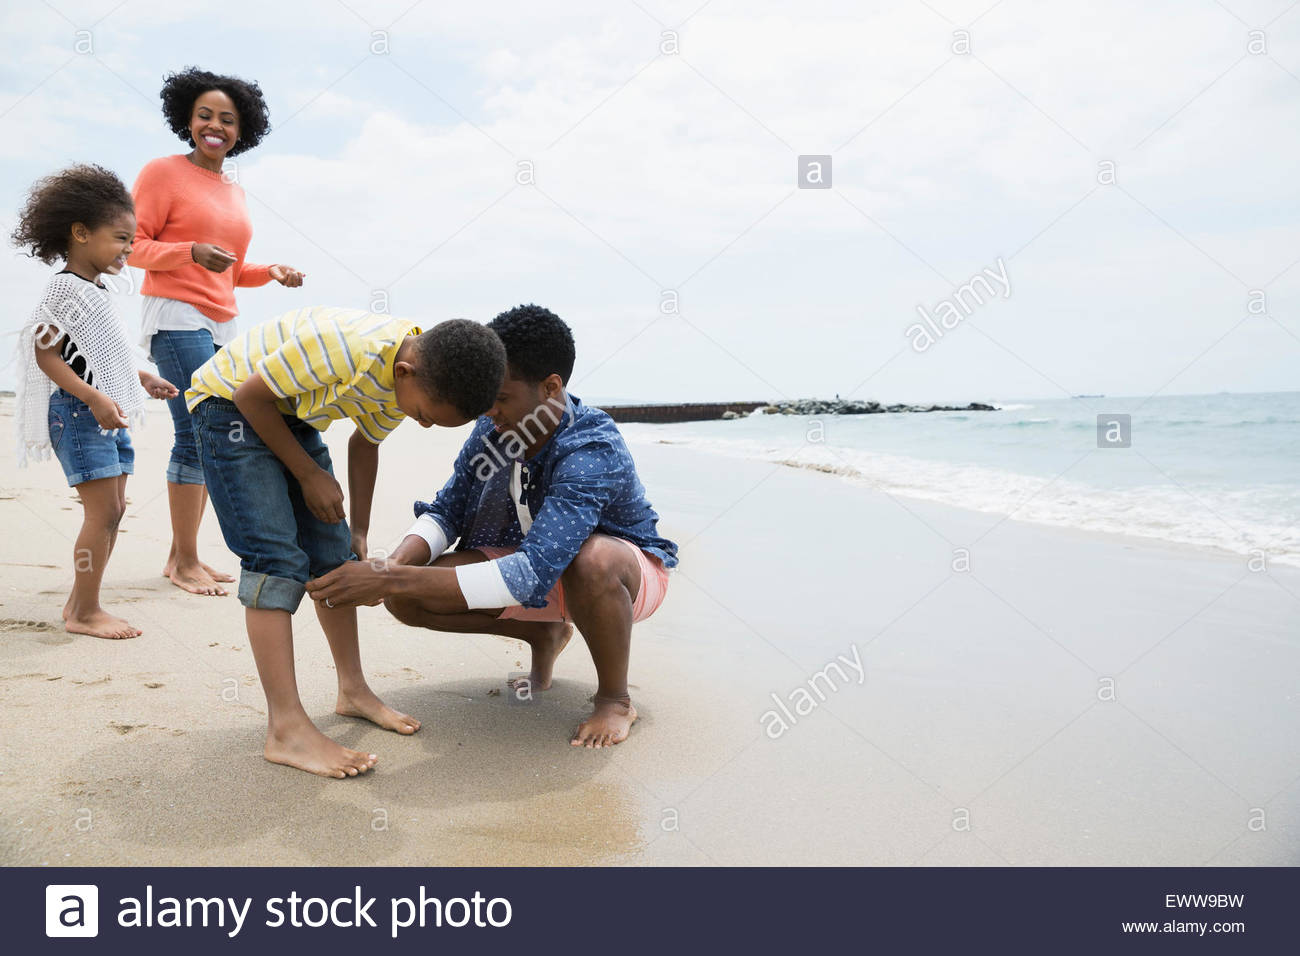 Father helping son roll up jeans at beach - Stock Image